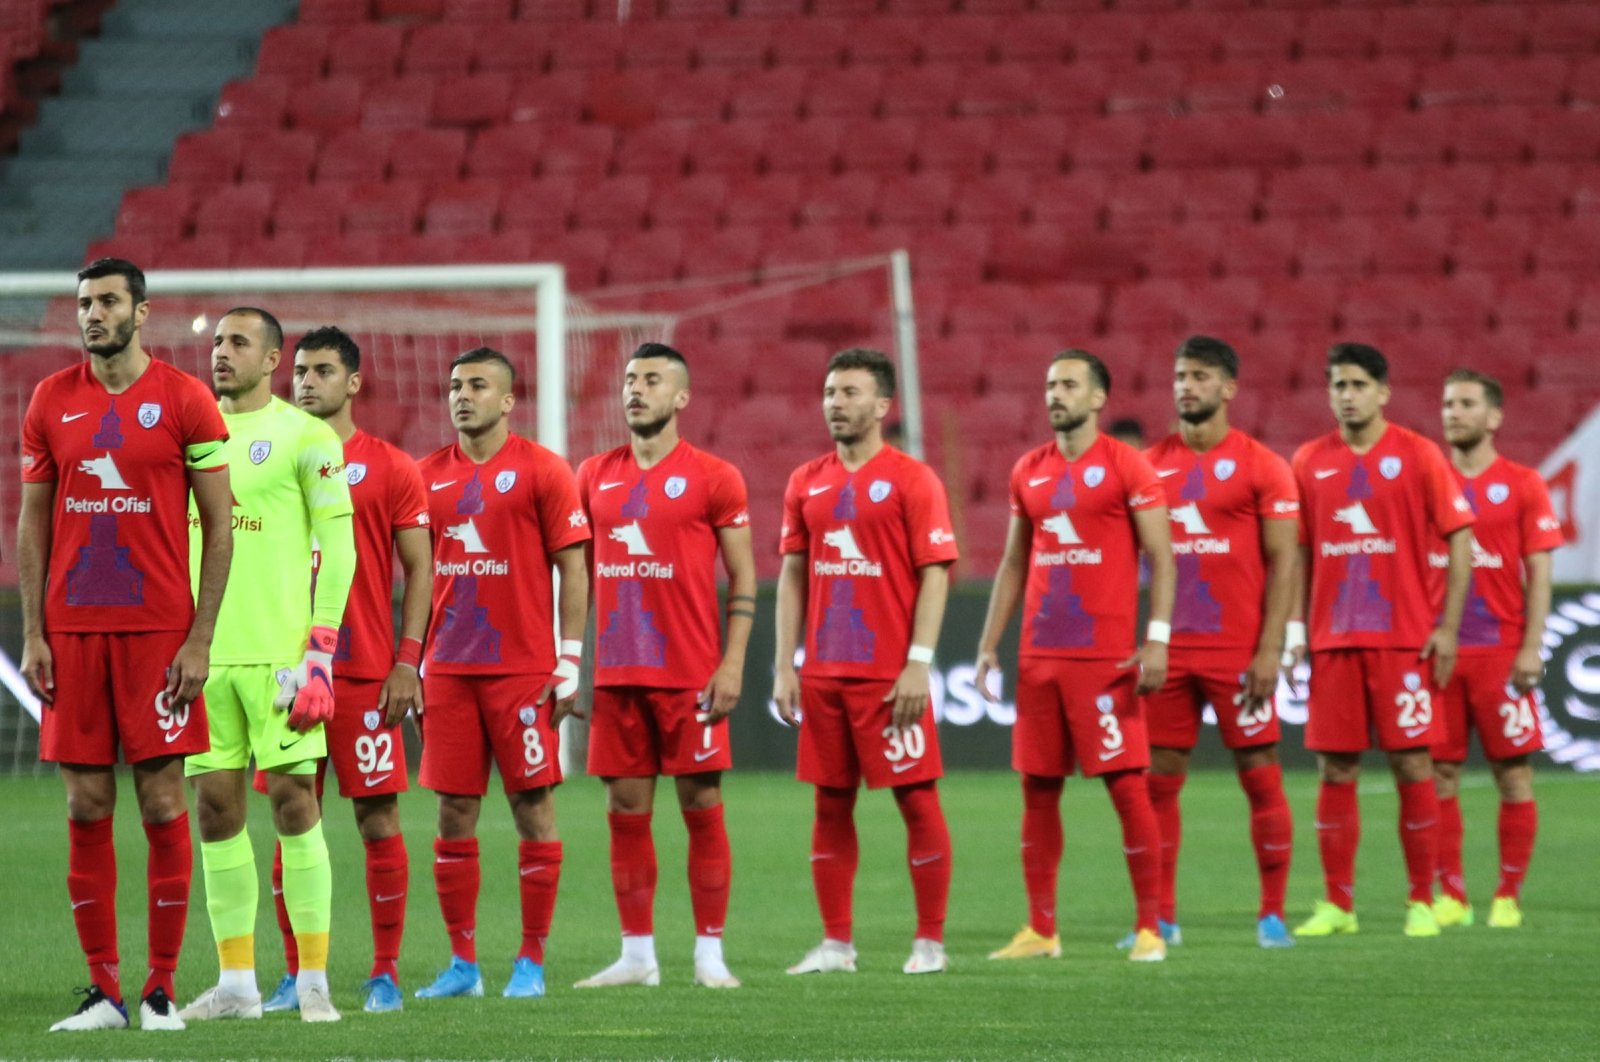 Altınordu players sing the national anthem before a match in Samsun, Turkey, May 22, 2021. (DHA Photo)